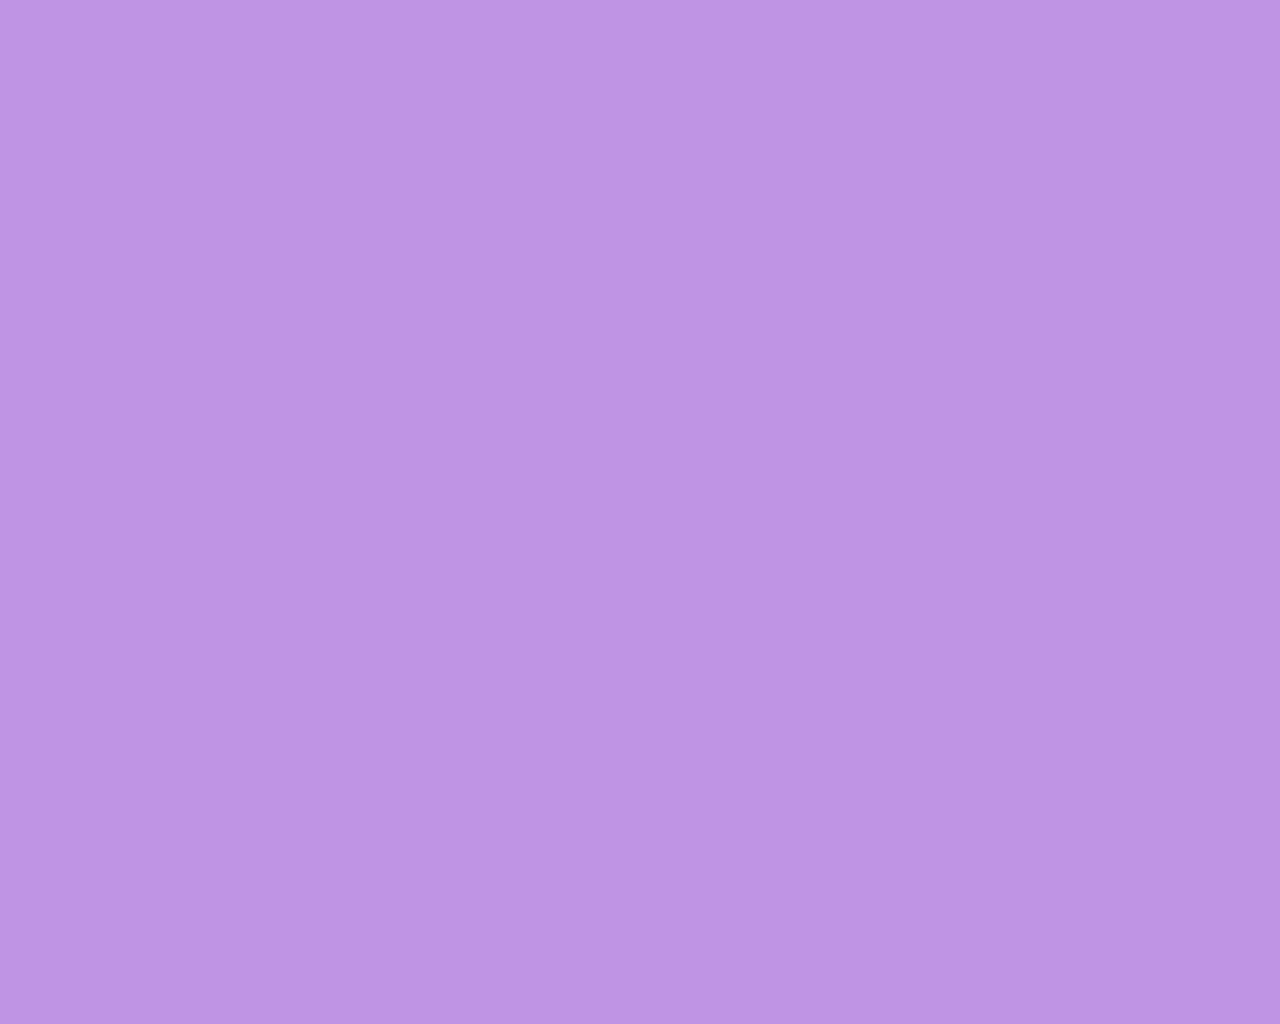 Free download Solid Lavender Color Wallpaper Solid bright ...